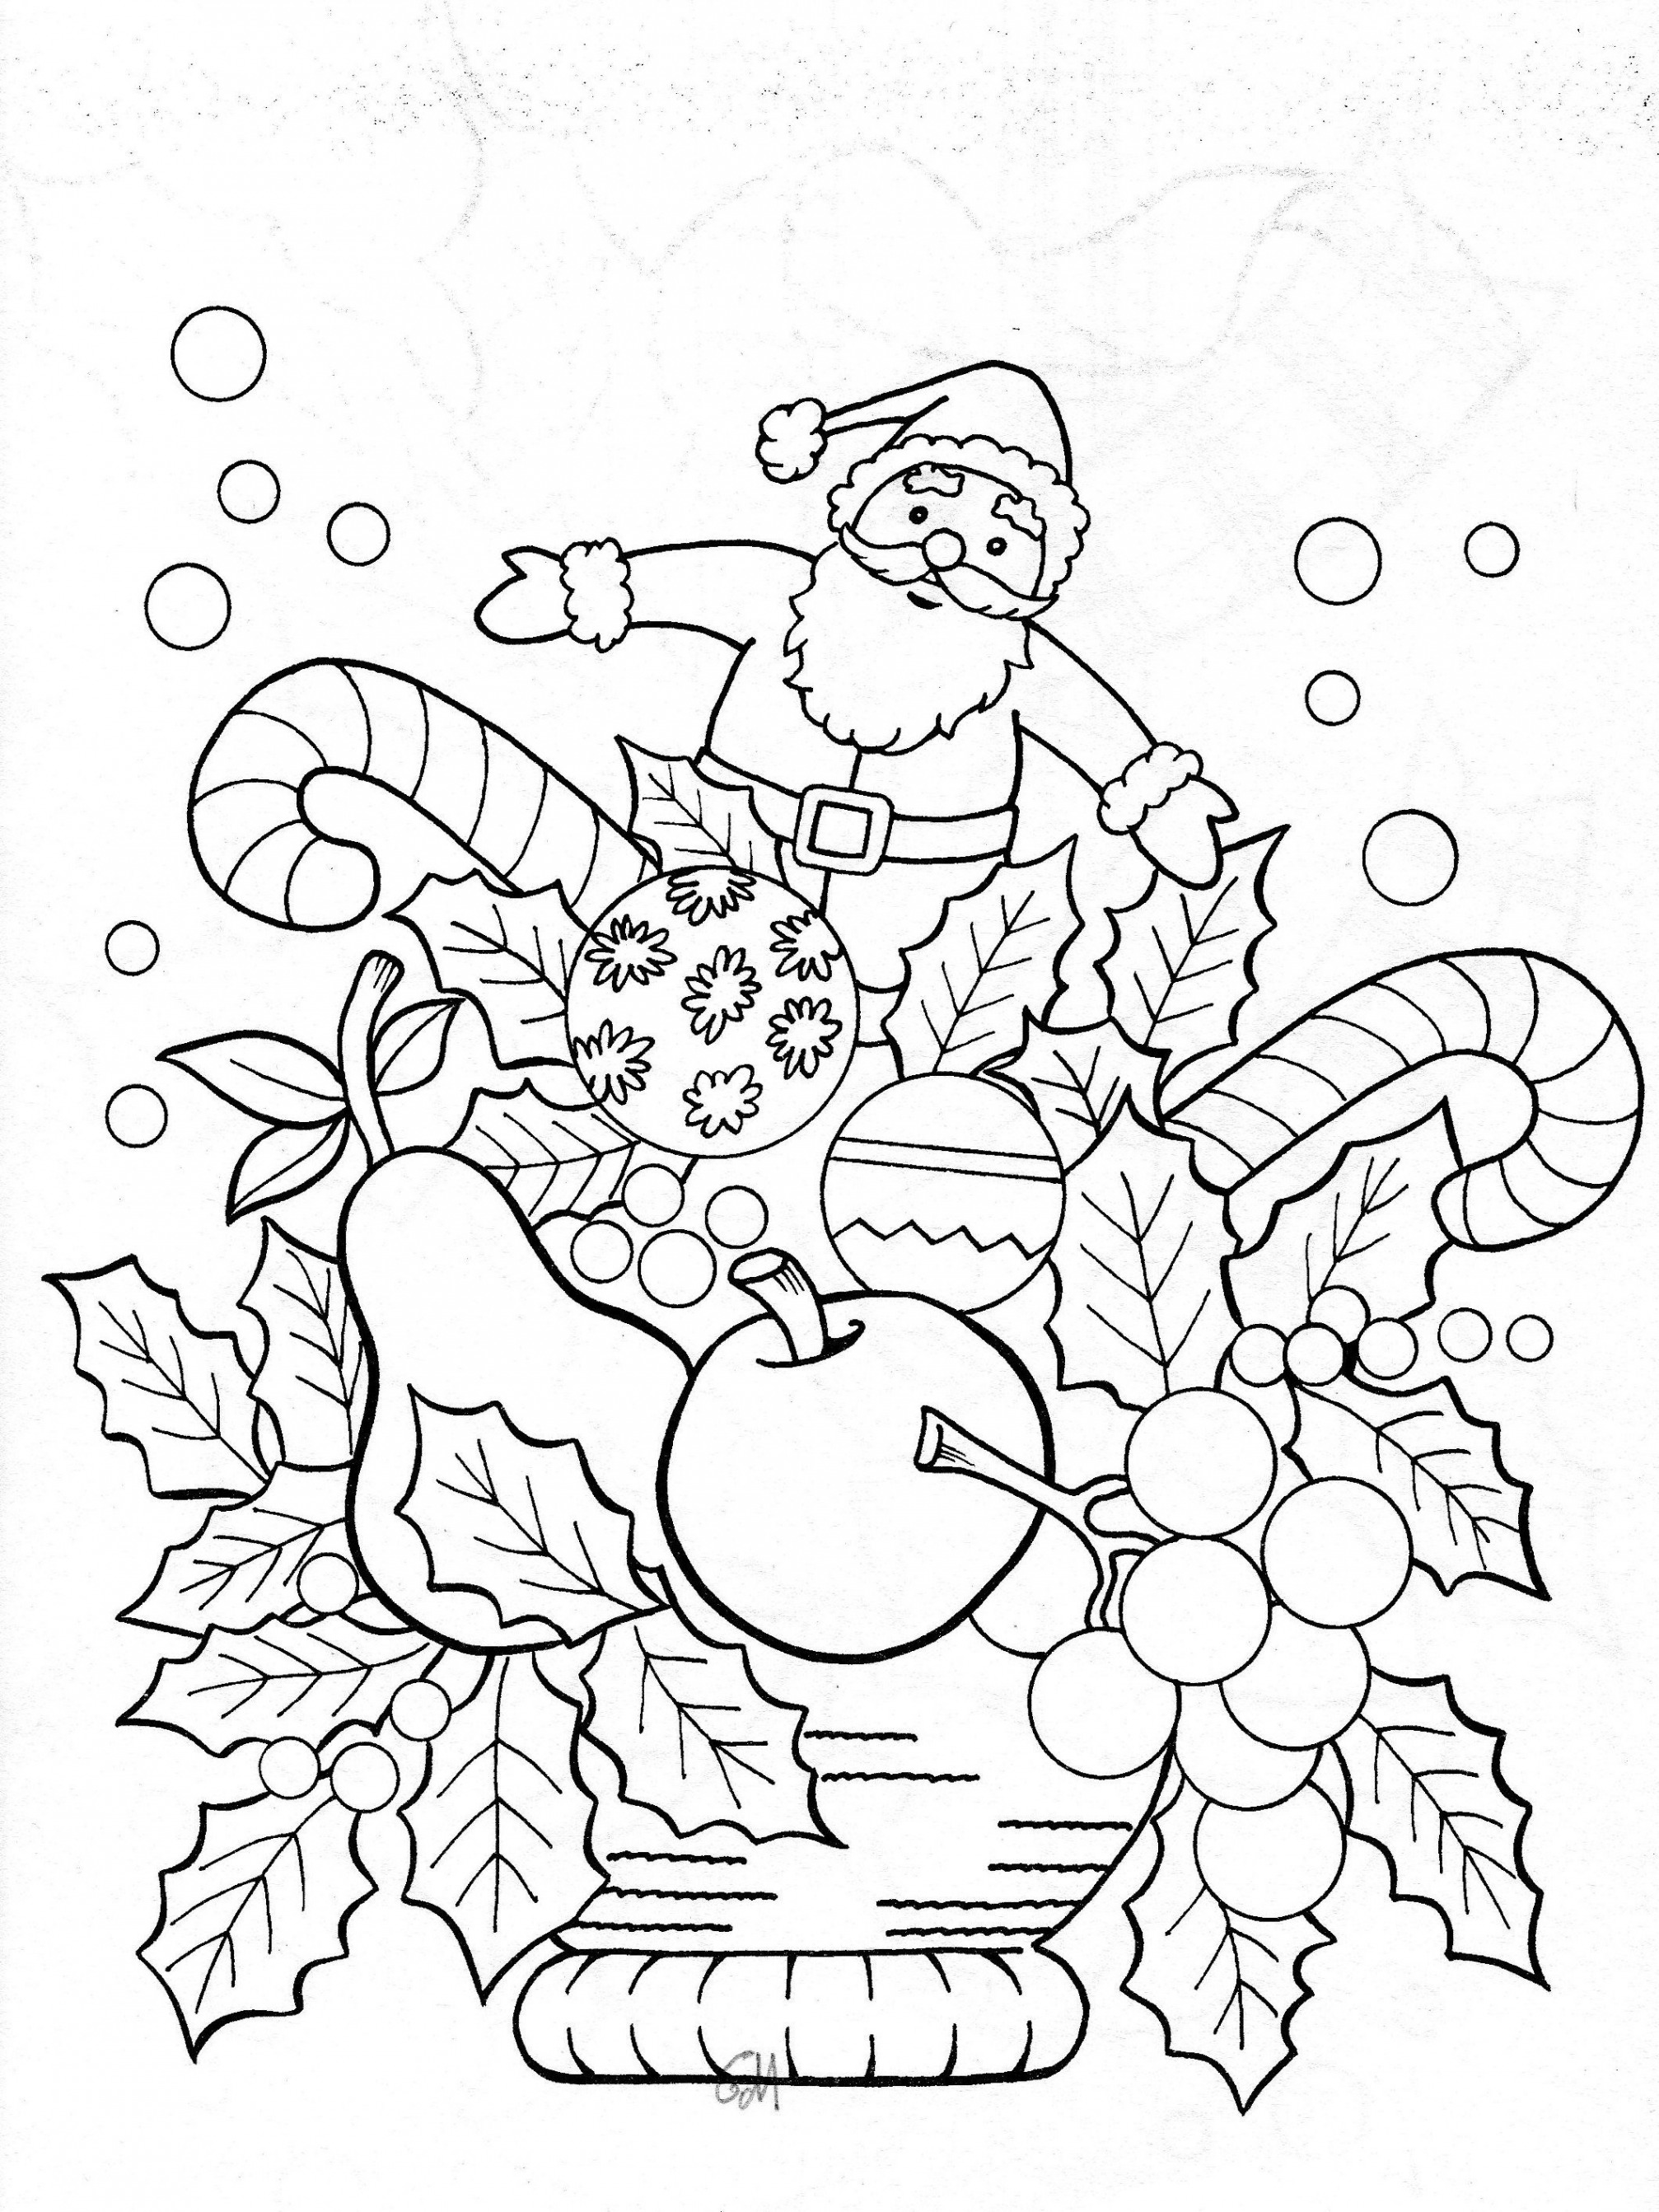 Christmas Coloring Pages Small With Catdog Free Colouring Australia Cool